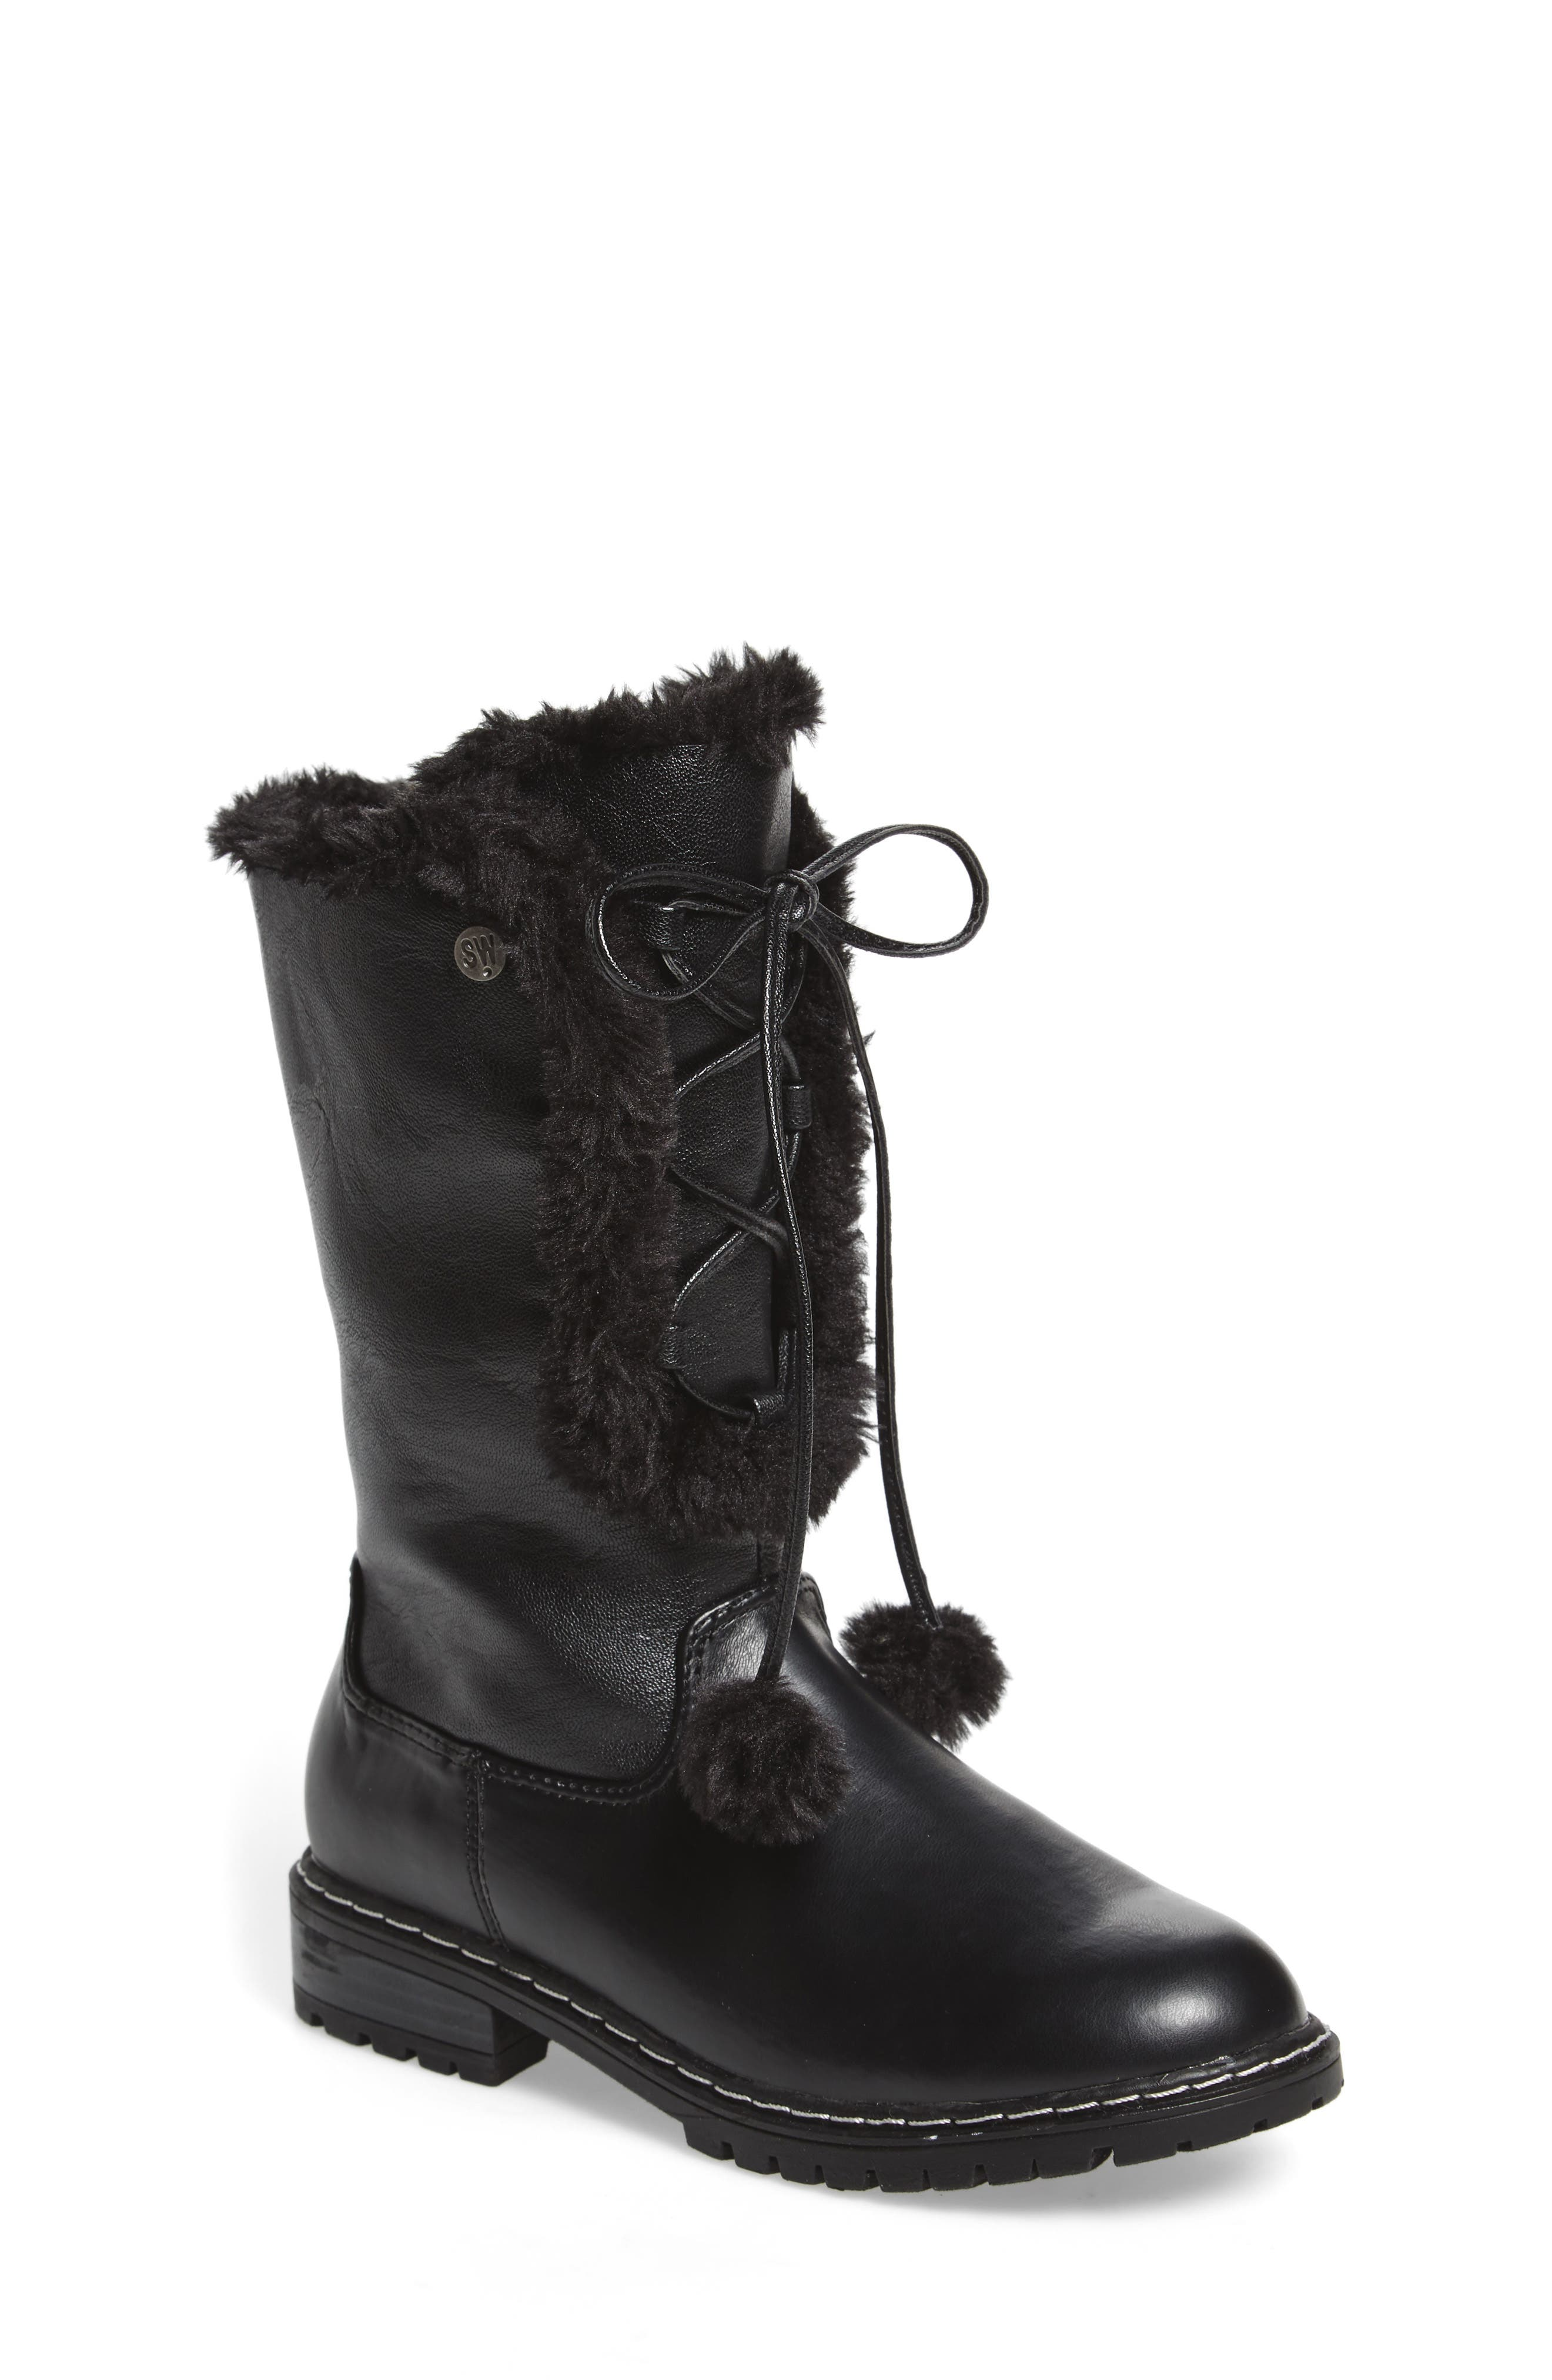 Stuart Weitzman Luge Heidi Boot (Toddler, Little Kid & Big Kid)